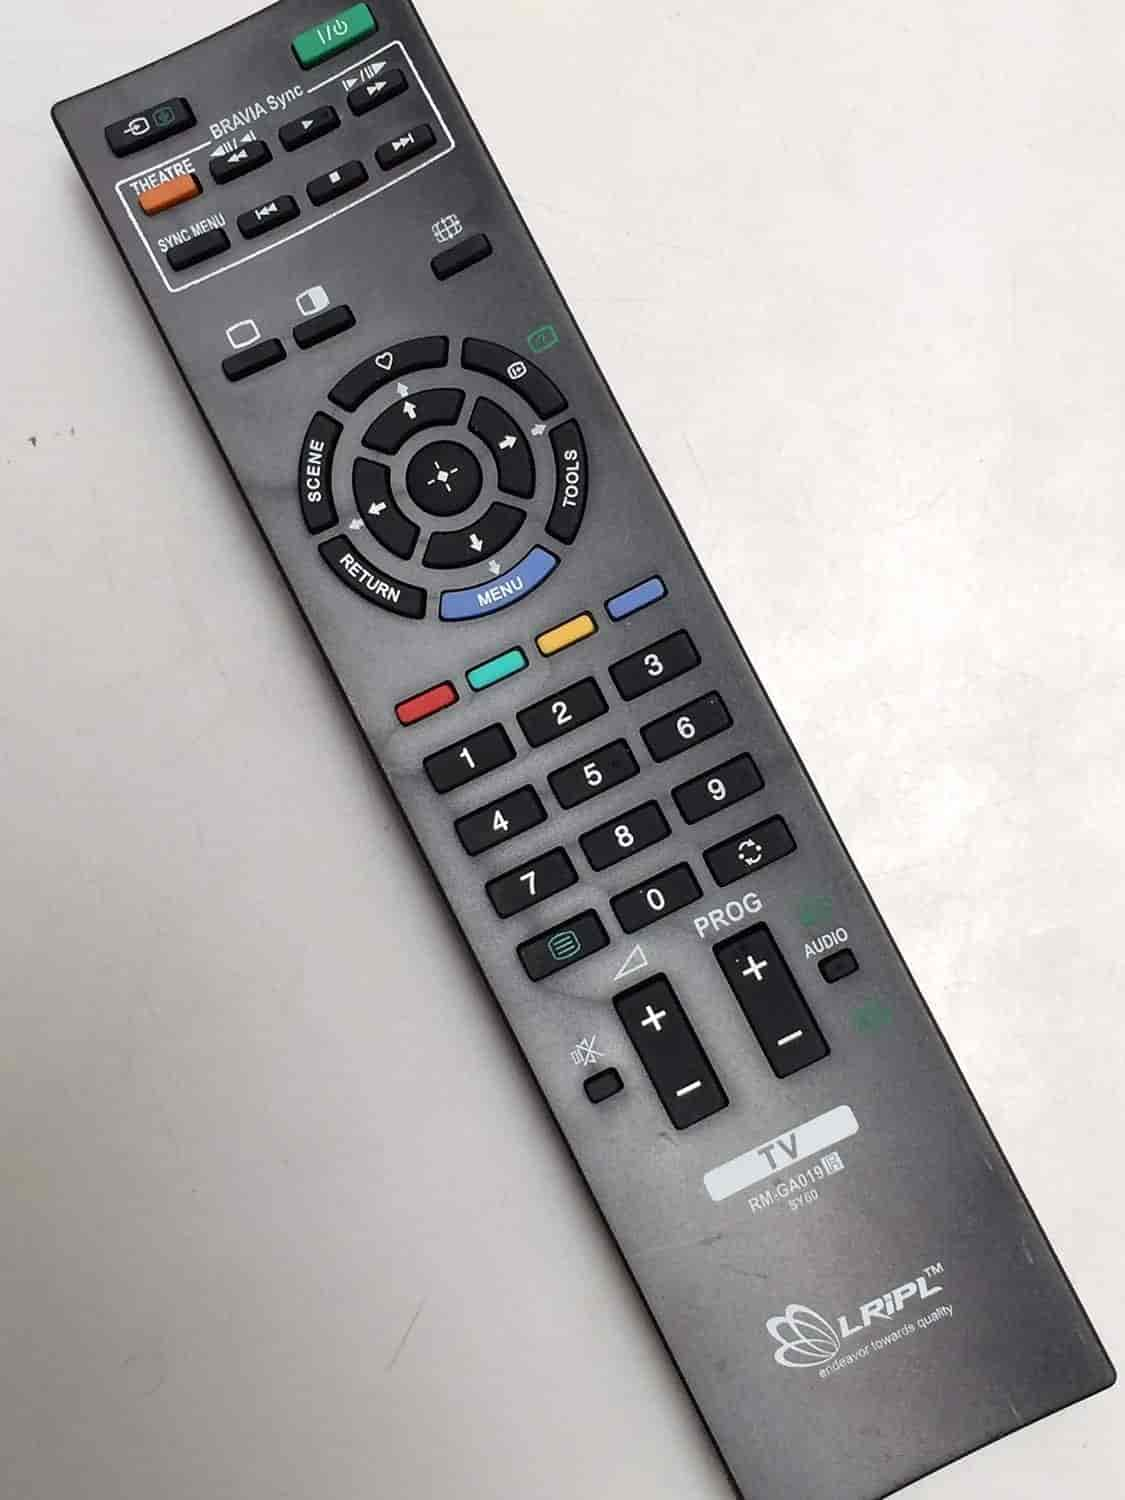 Sony-LED-LCD-TV-compatible-remote-control-Bravia-other-sony-tv-models